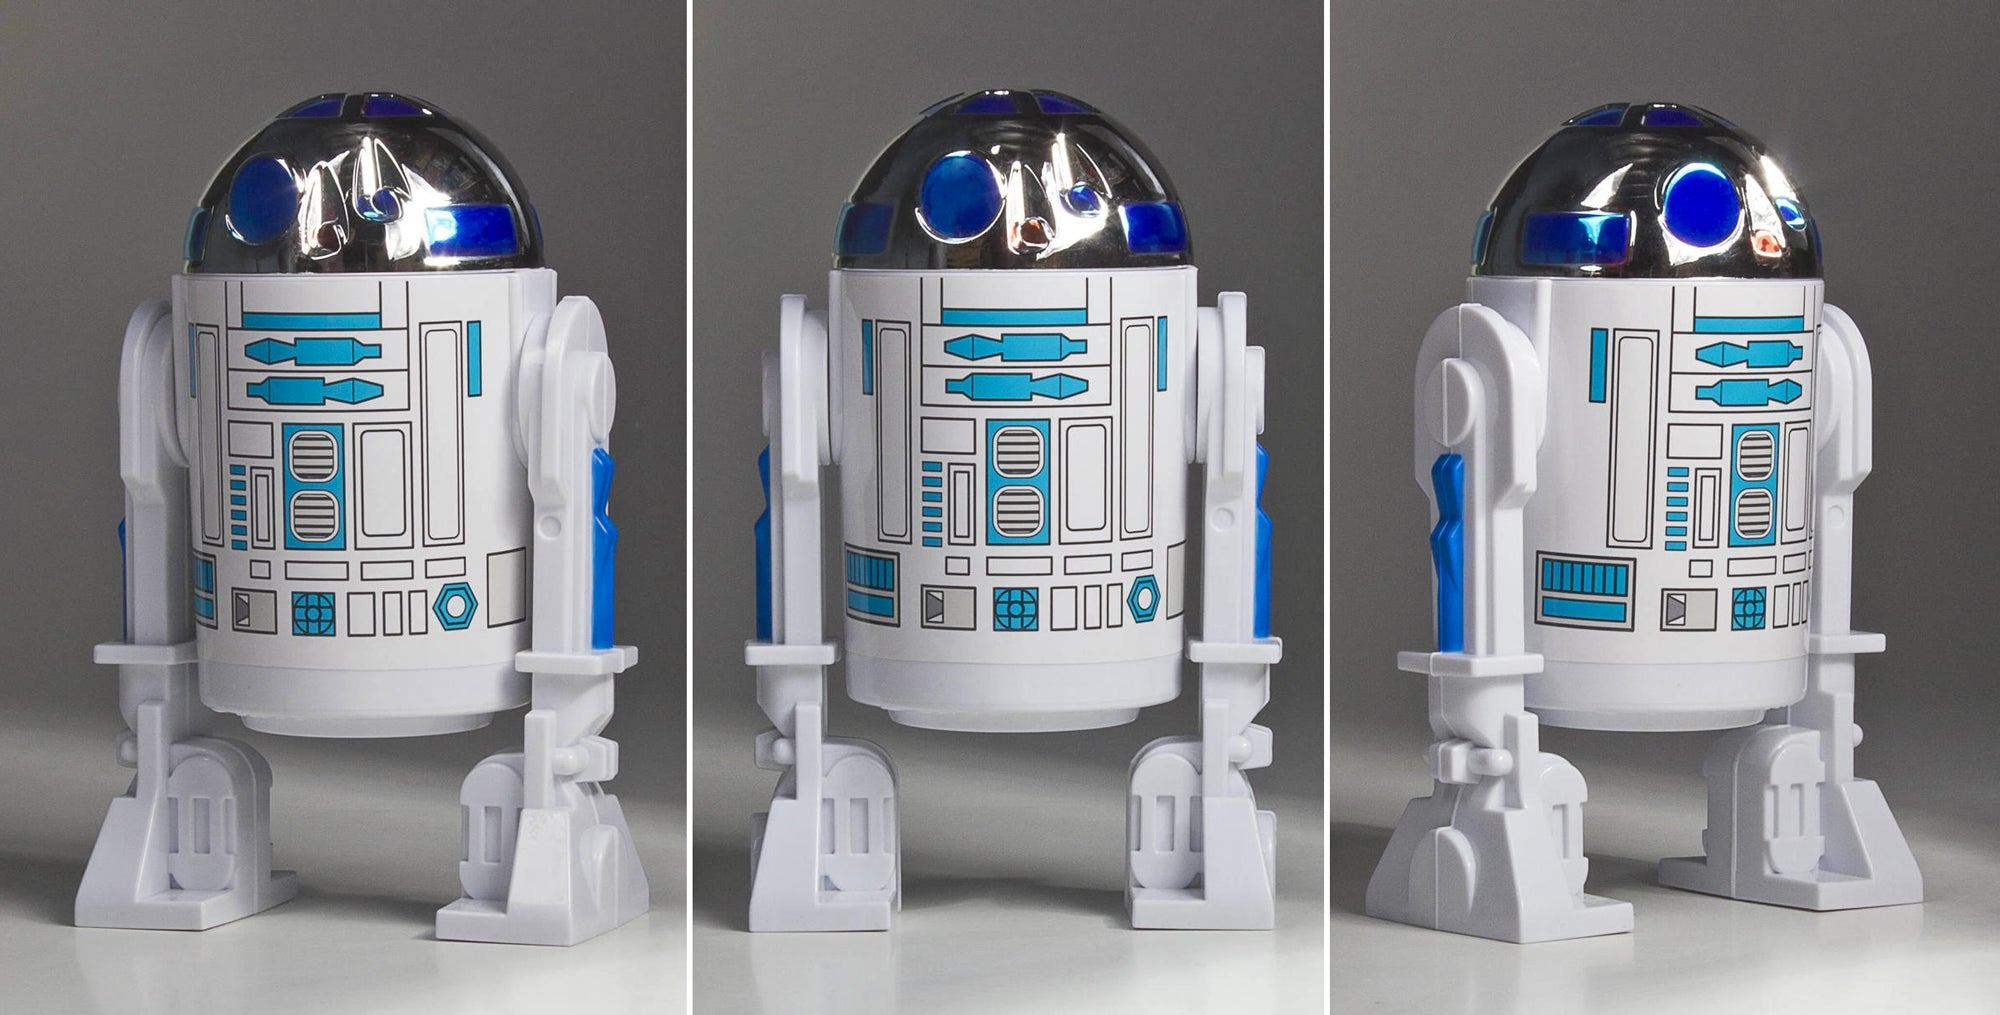 You Can Own A Lifesize Version Of The Worst R2-D2 Action Figure of All Time For $4200